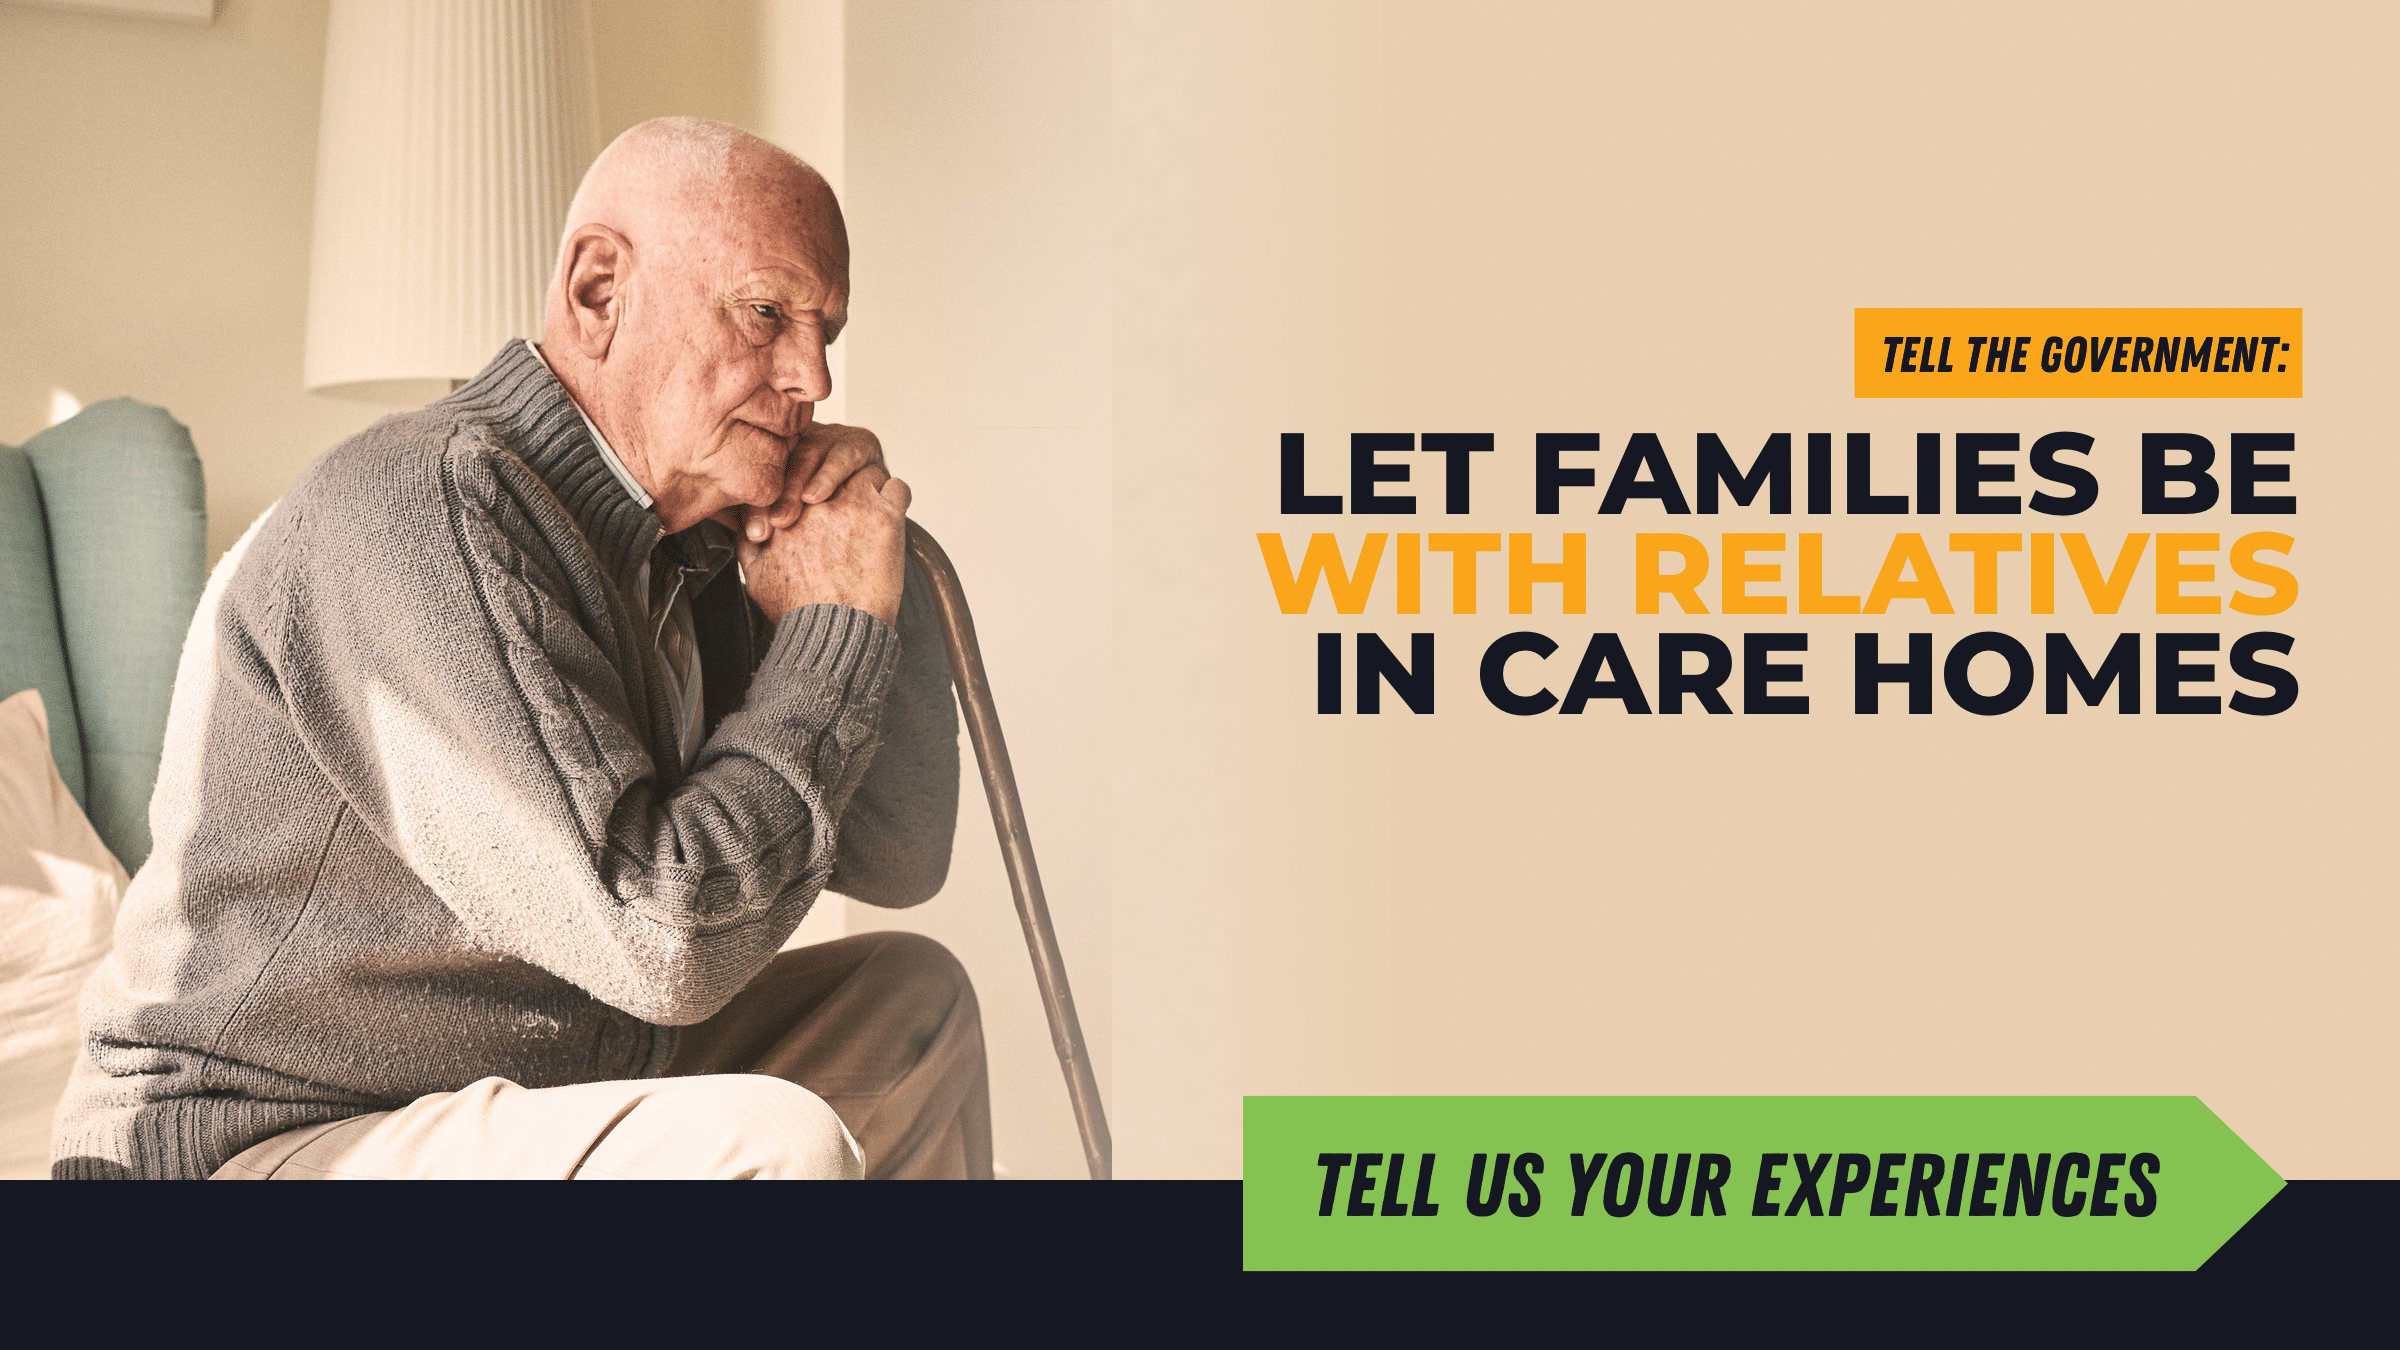 Tell us your care home experiences